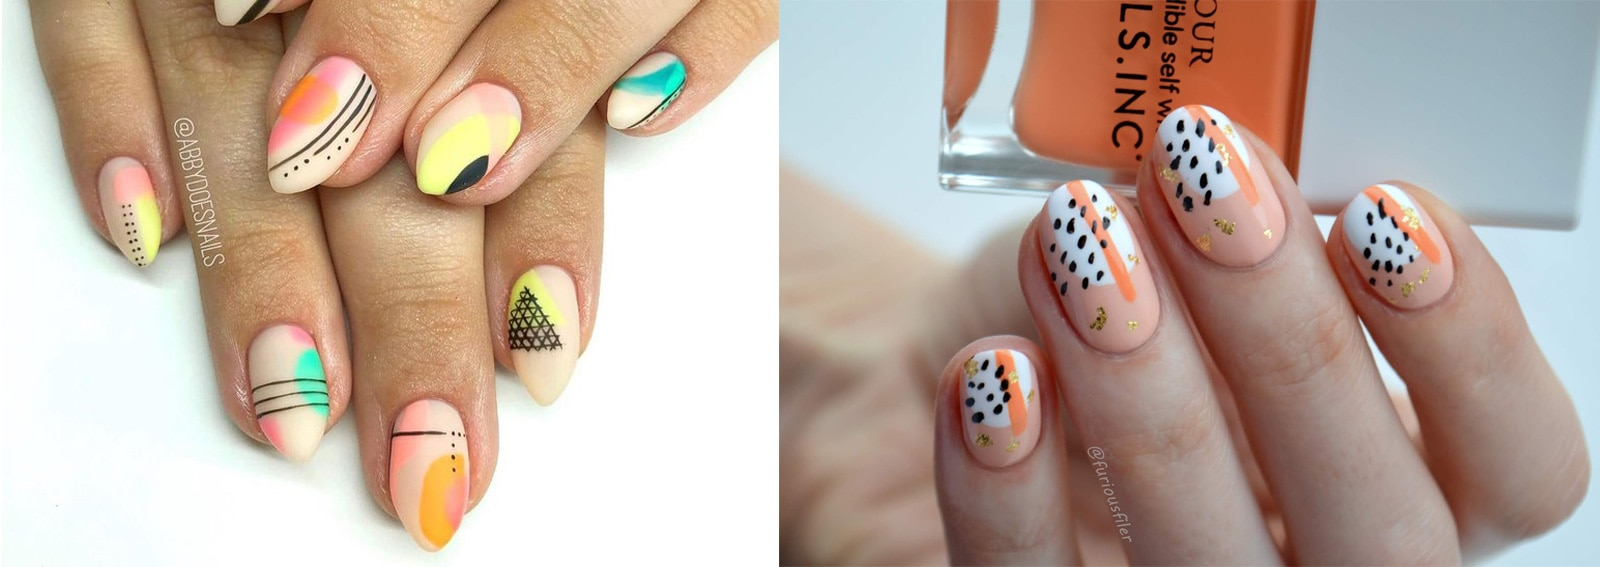 abstract-nail-art-manicure-astratta-unghie-cover-dekstop